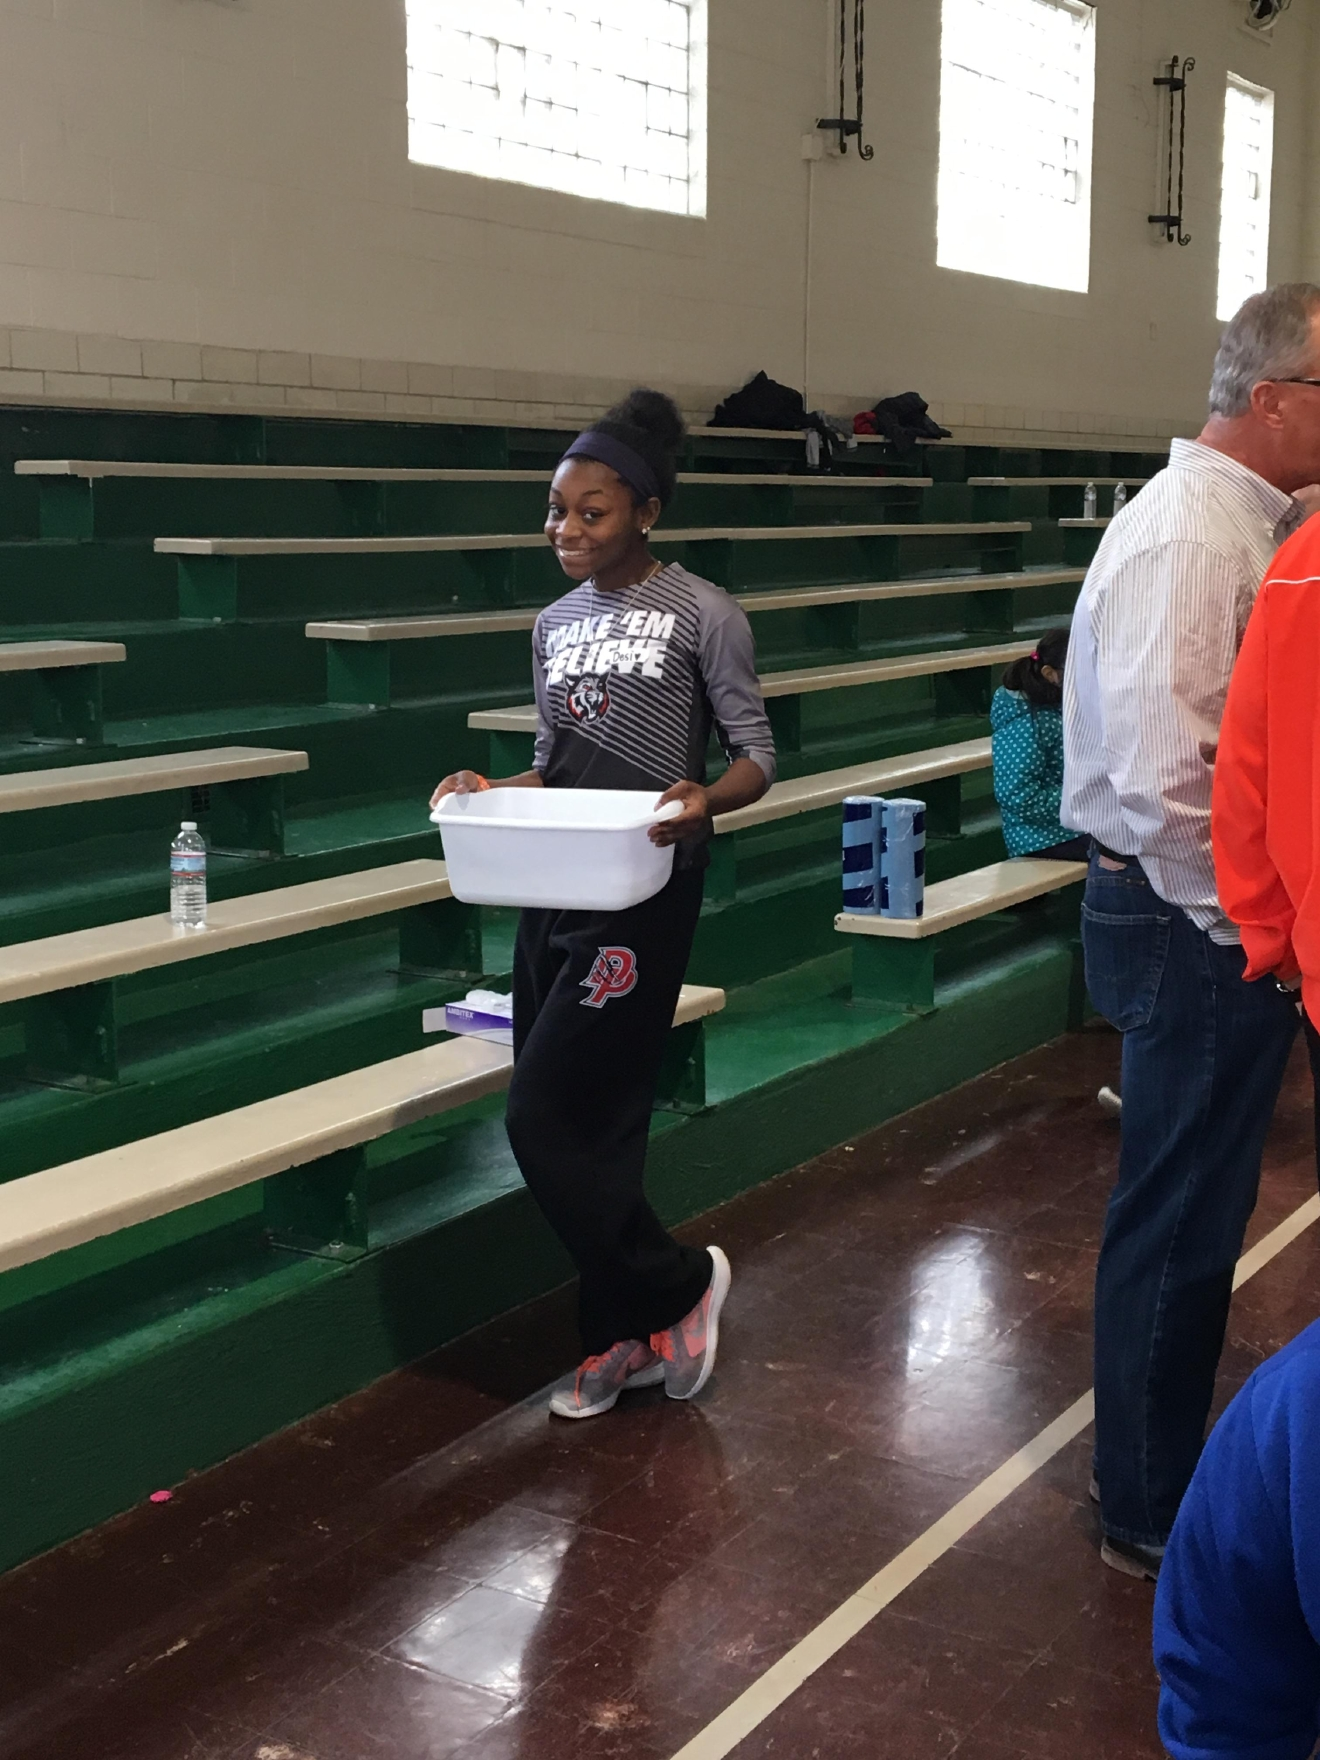 Local team raises money to provide people with shoes (Photo Courtesy of Coach Greg Taber)